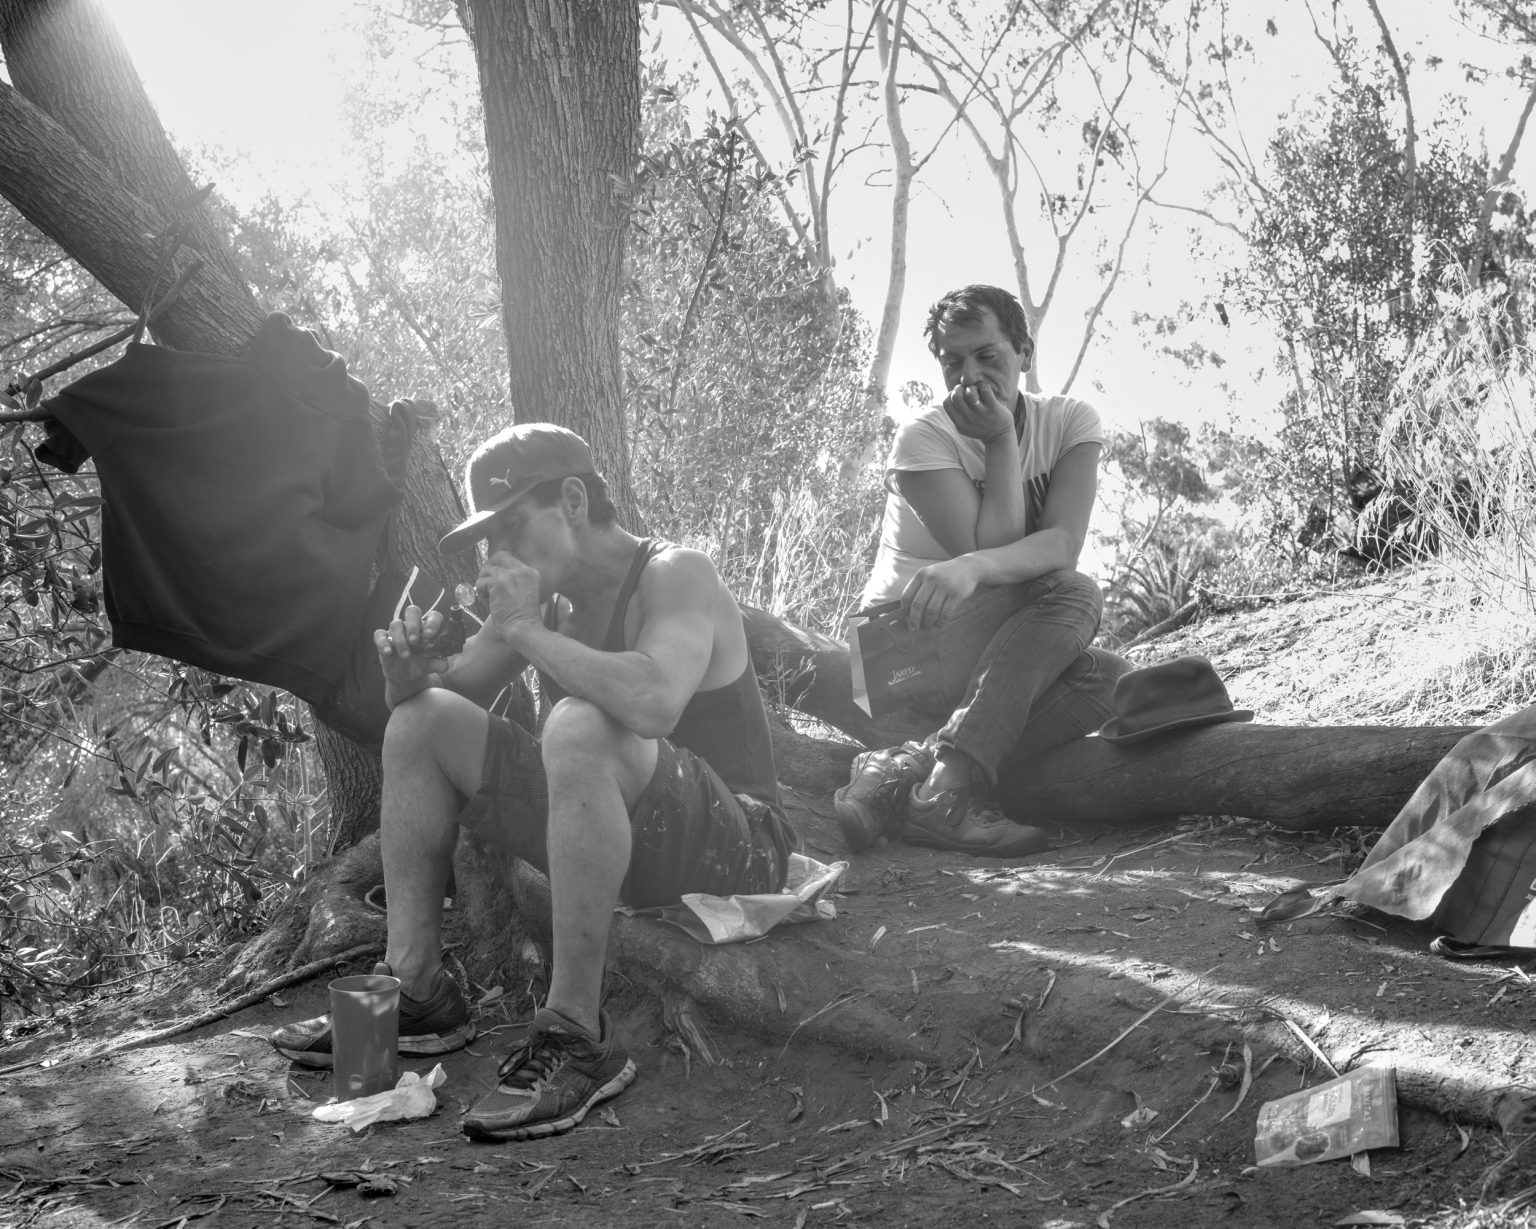 Pablo and Josè smoking crack in Balboa Park. Pablo says he managed to cross the border several months after the rest of his family and once he was in the US he realized his family began a new life without him. San Diego, California, November 2017.